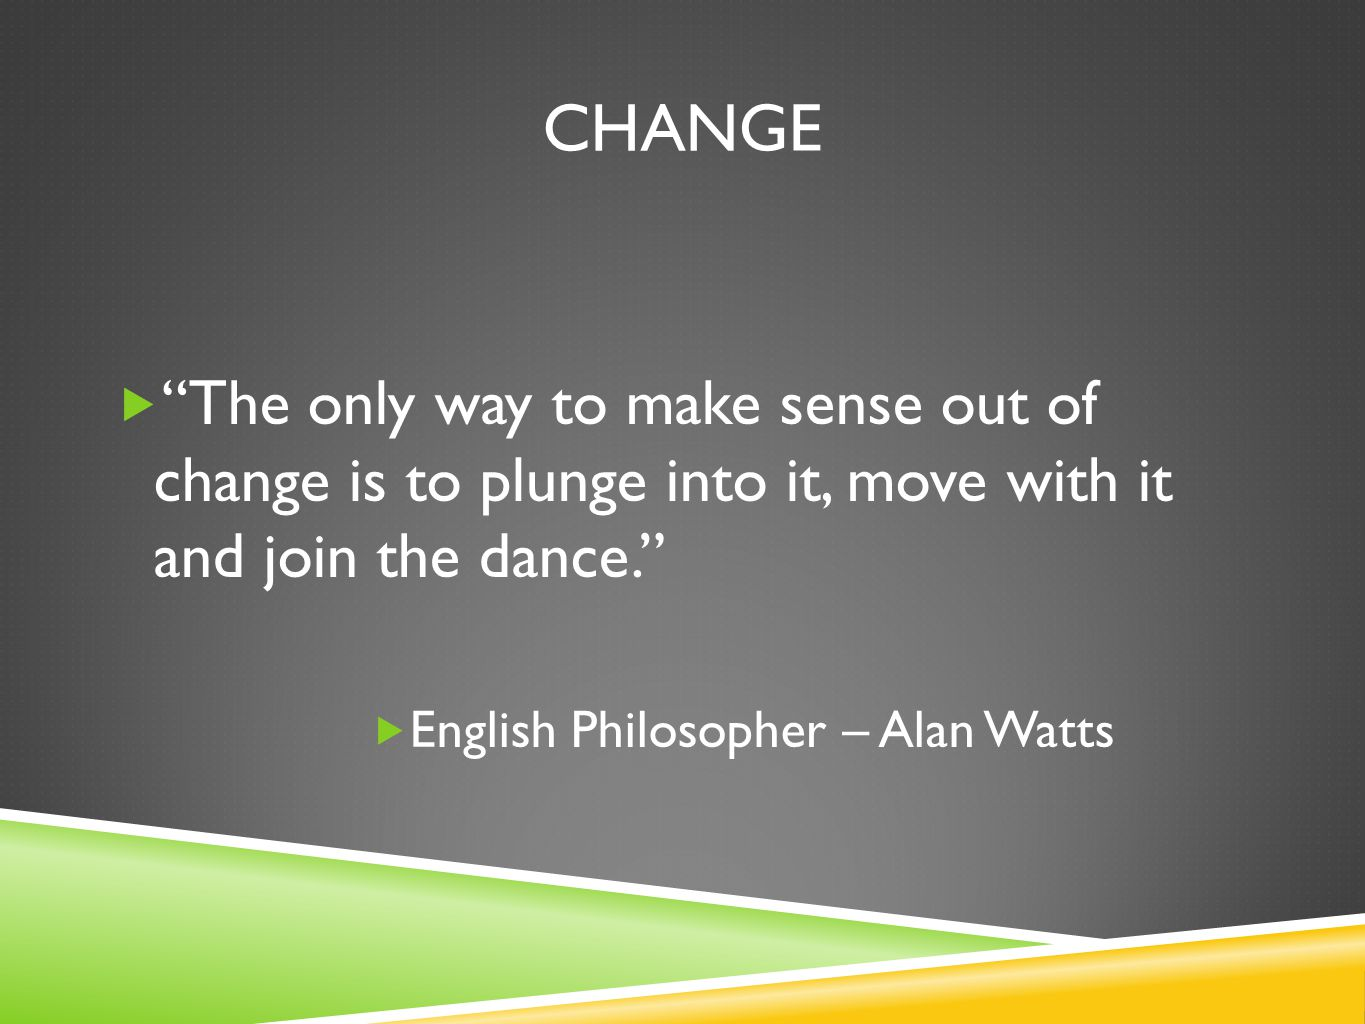 Change The only way to make sense out of change is to plunge into it, move with it and join the dance.